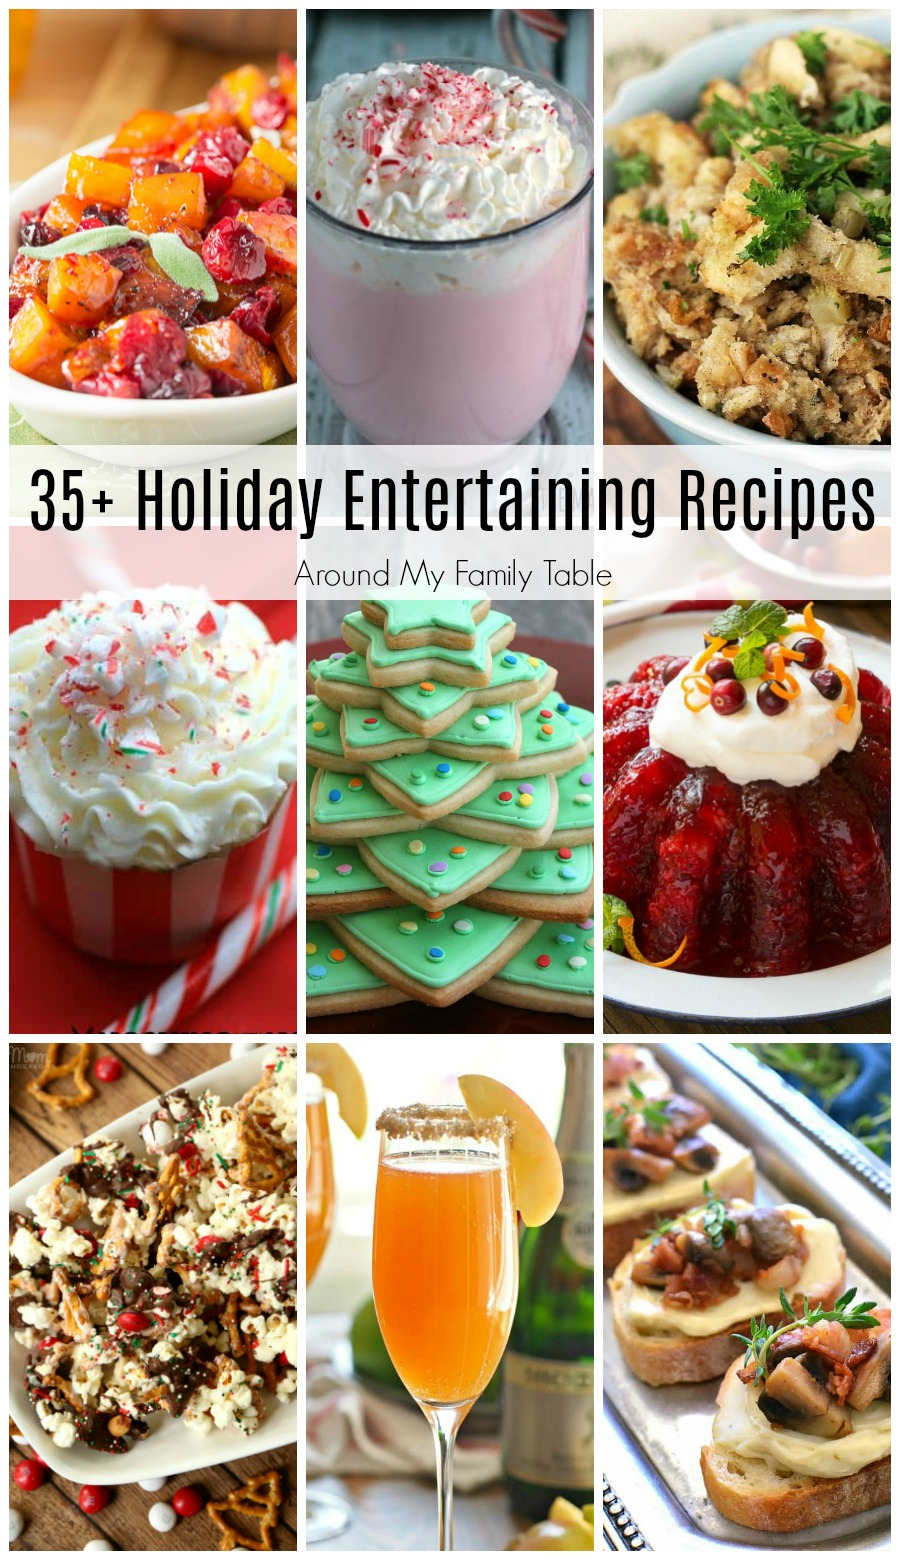 I'm always on the hunt for great holiday entertaining recipes. These 35+ Holiday Entertaining Recipes are perfect for any party that you are planning on hosting or attending this year!